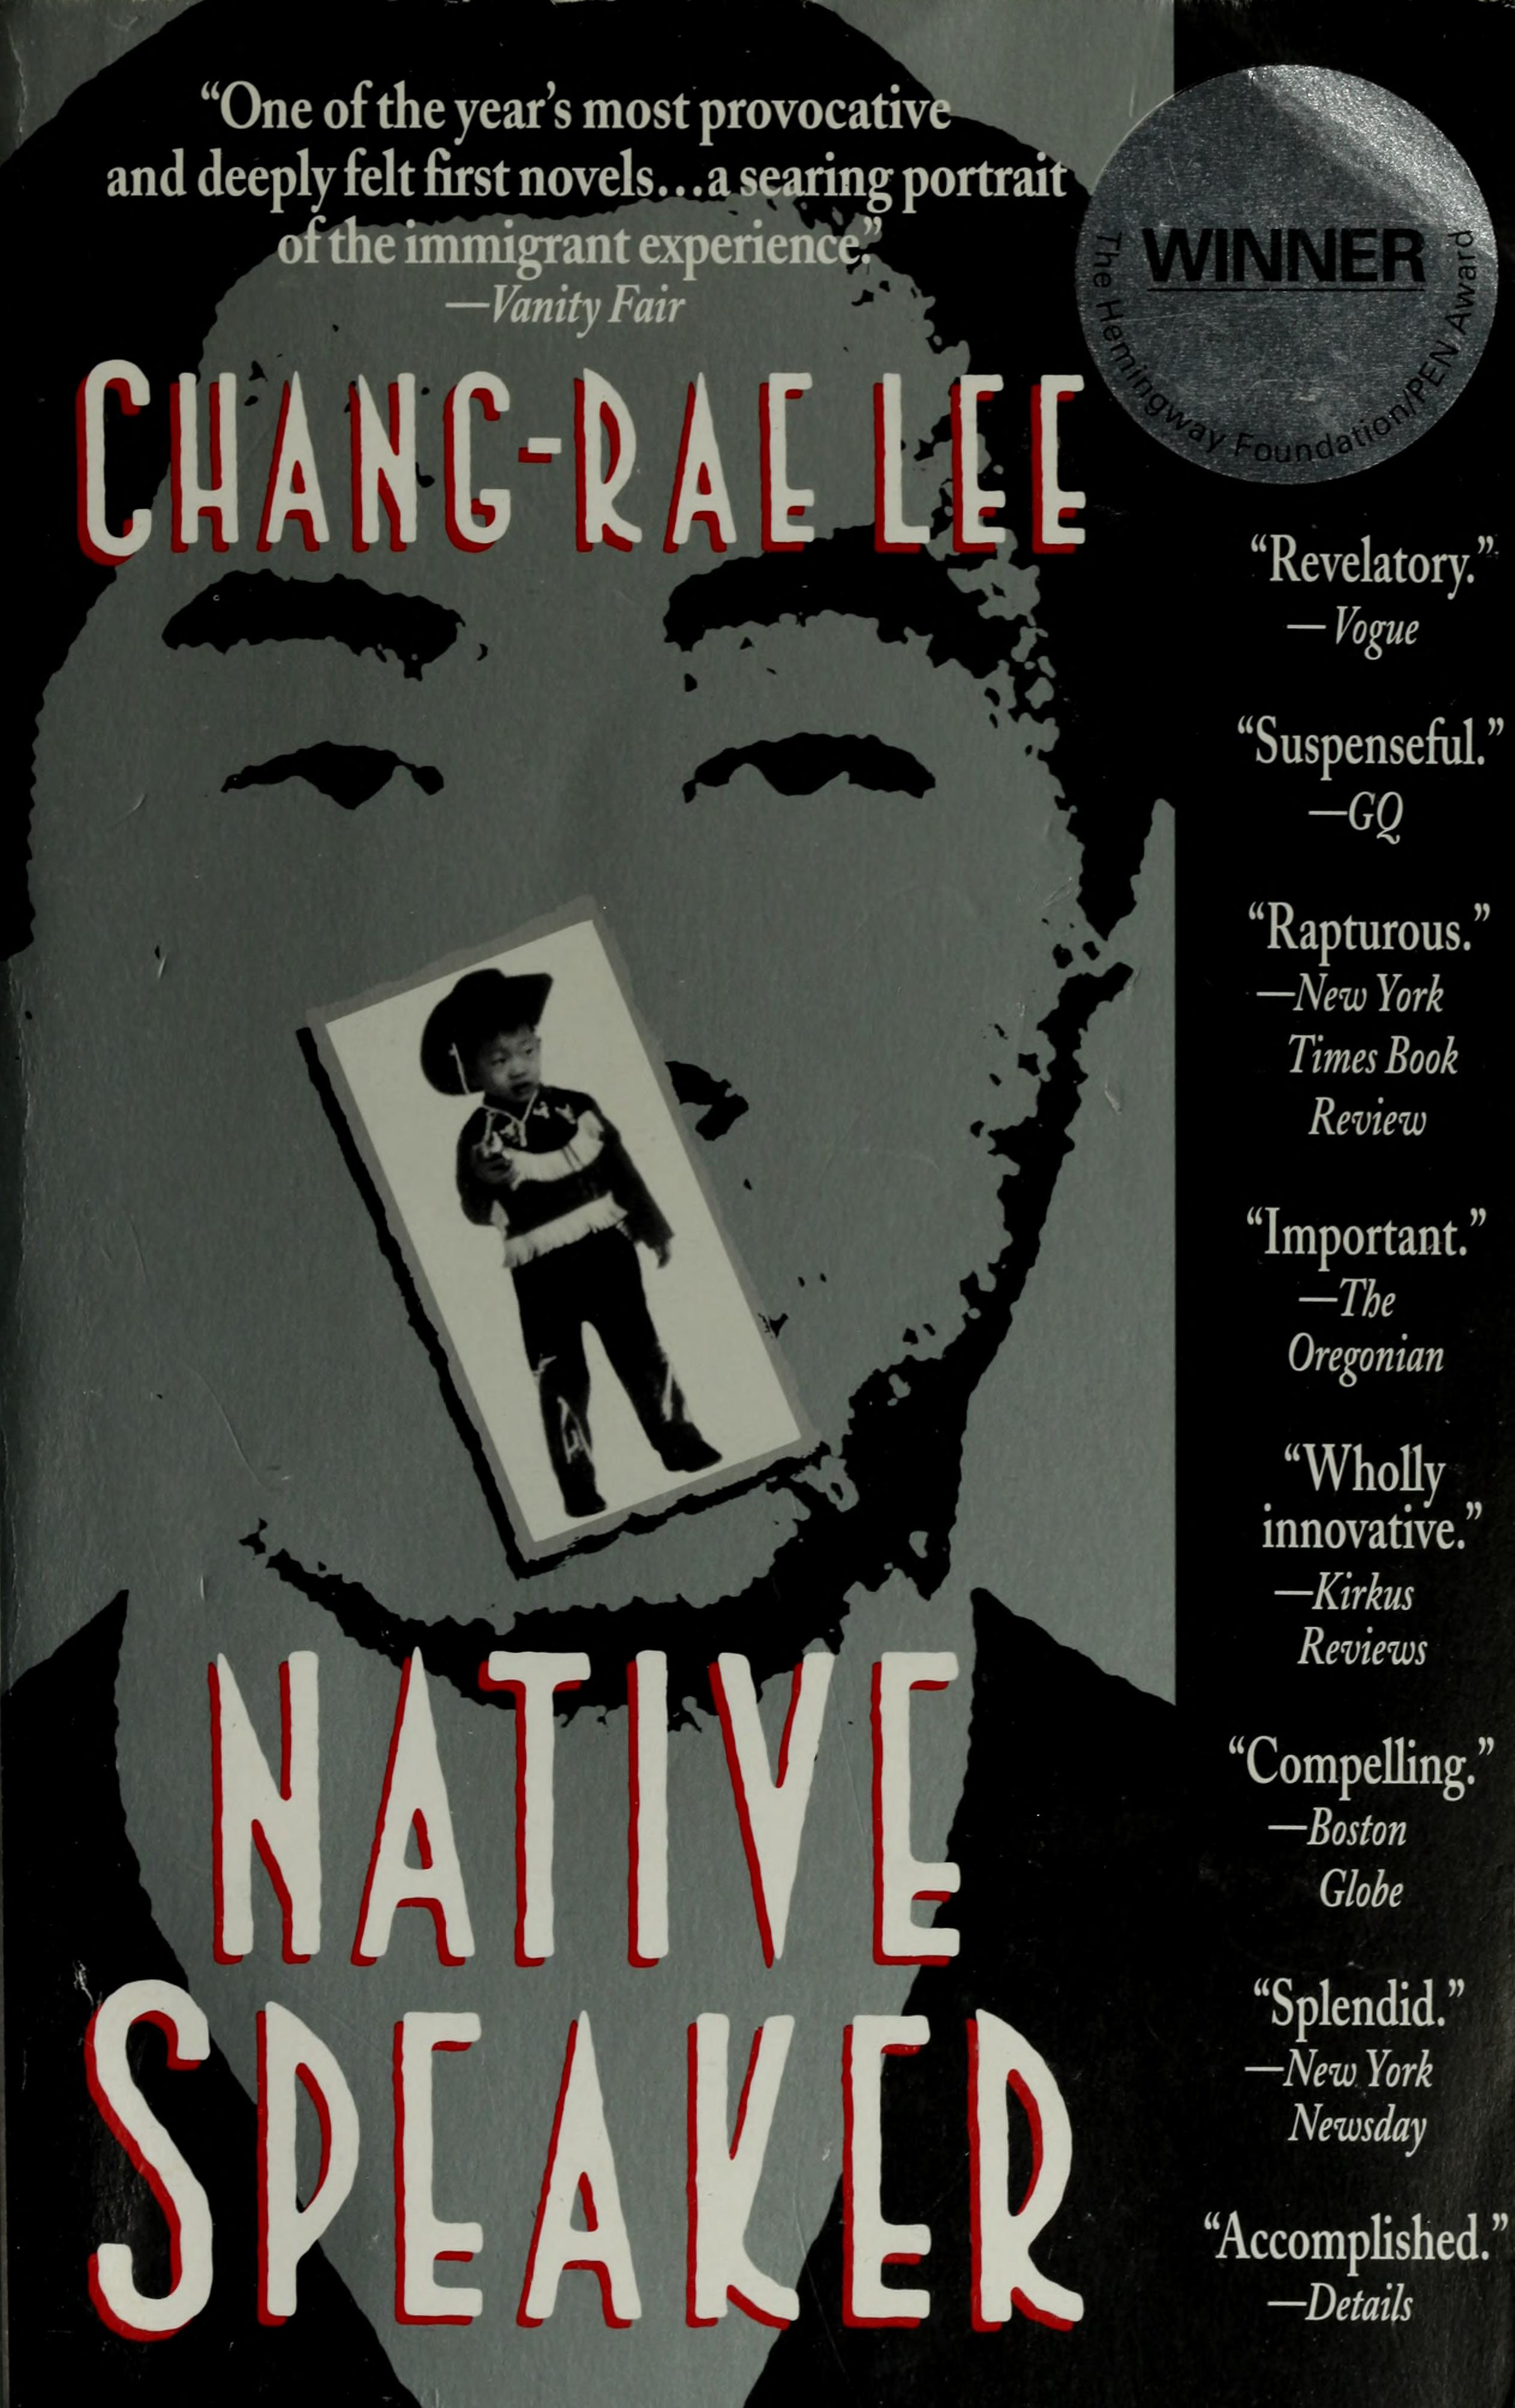 Native speaker : Lee, Chang-rae : Free Download, Borrow, and